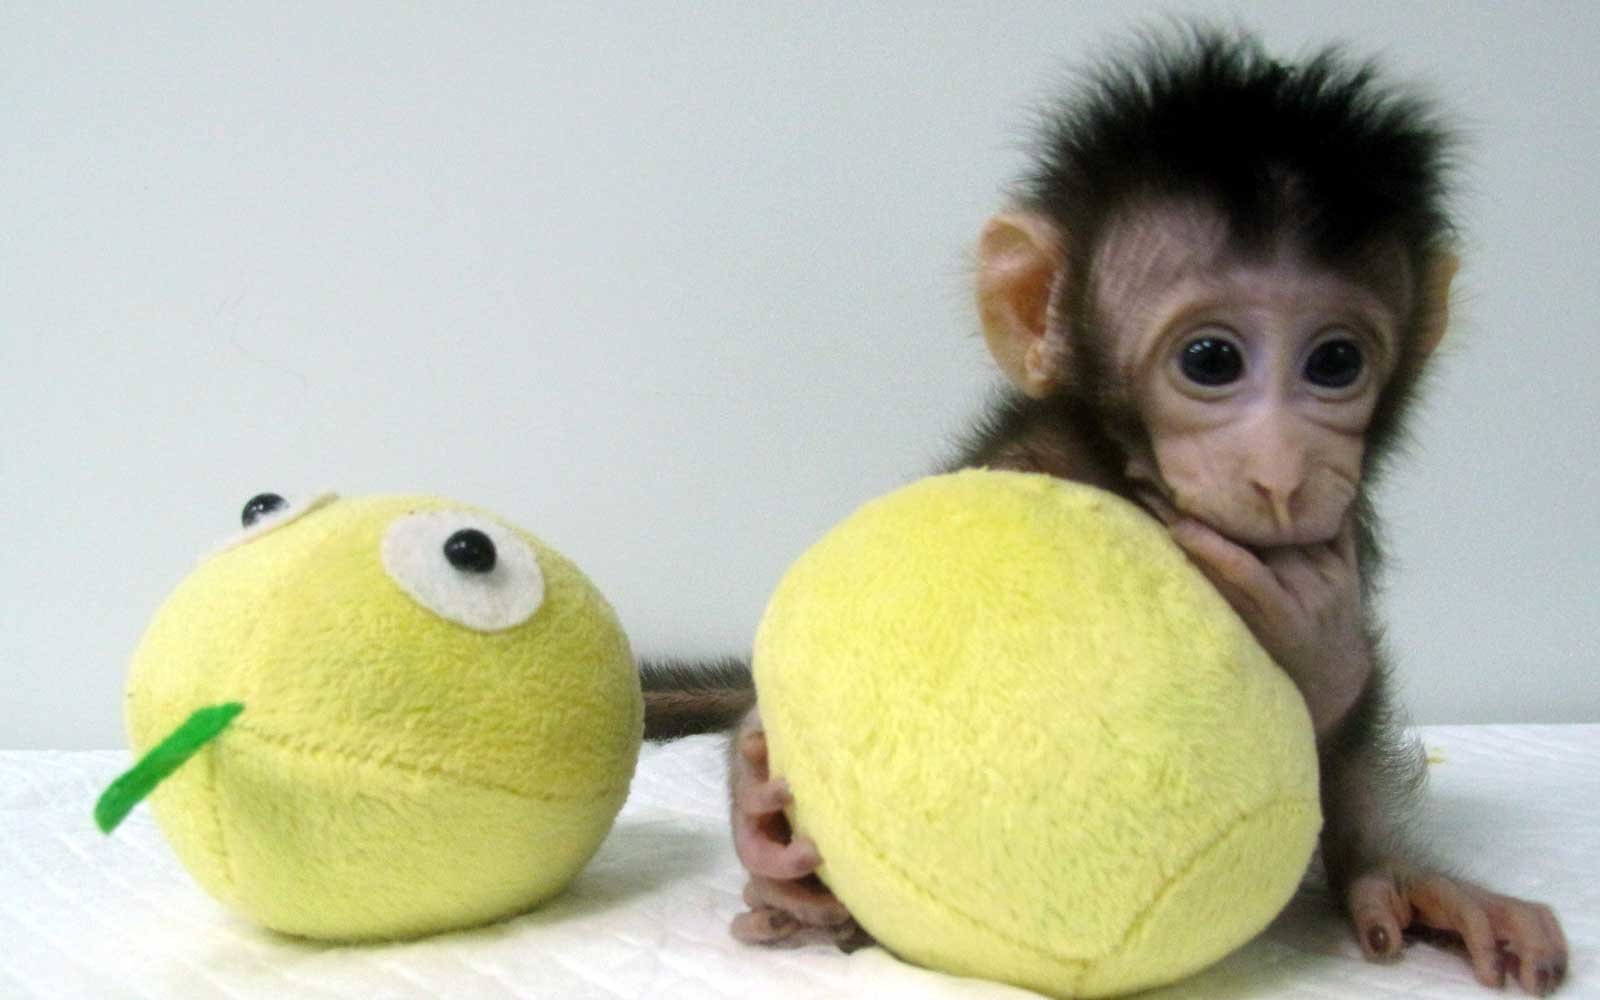 Chinese scientists just cloned monkeys for the first time